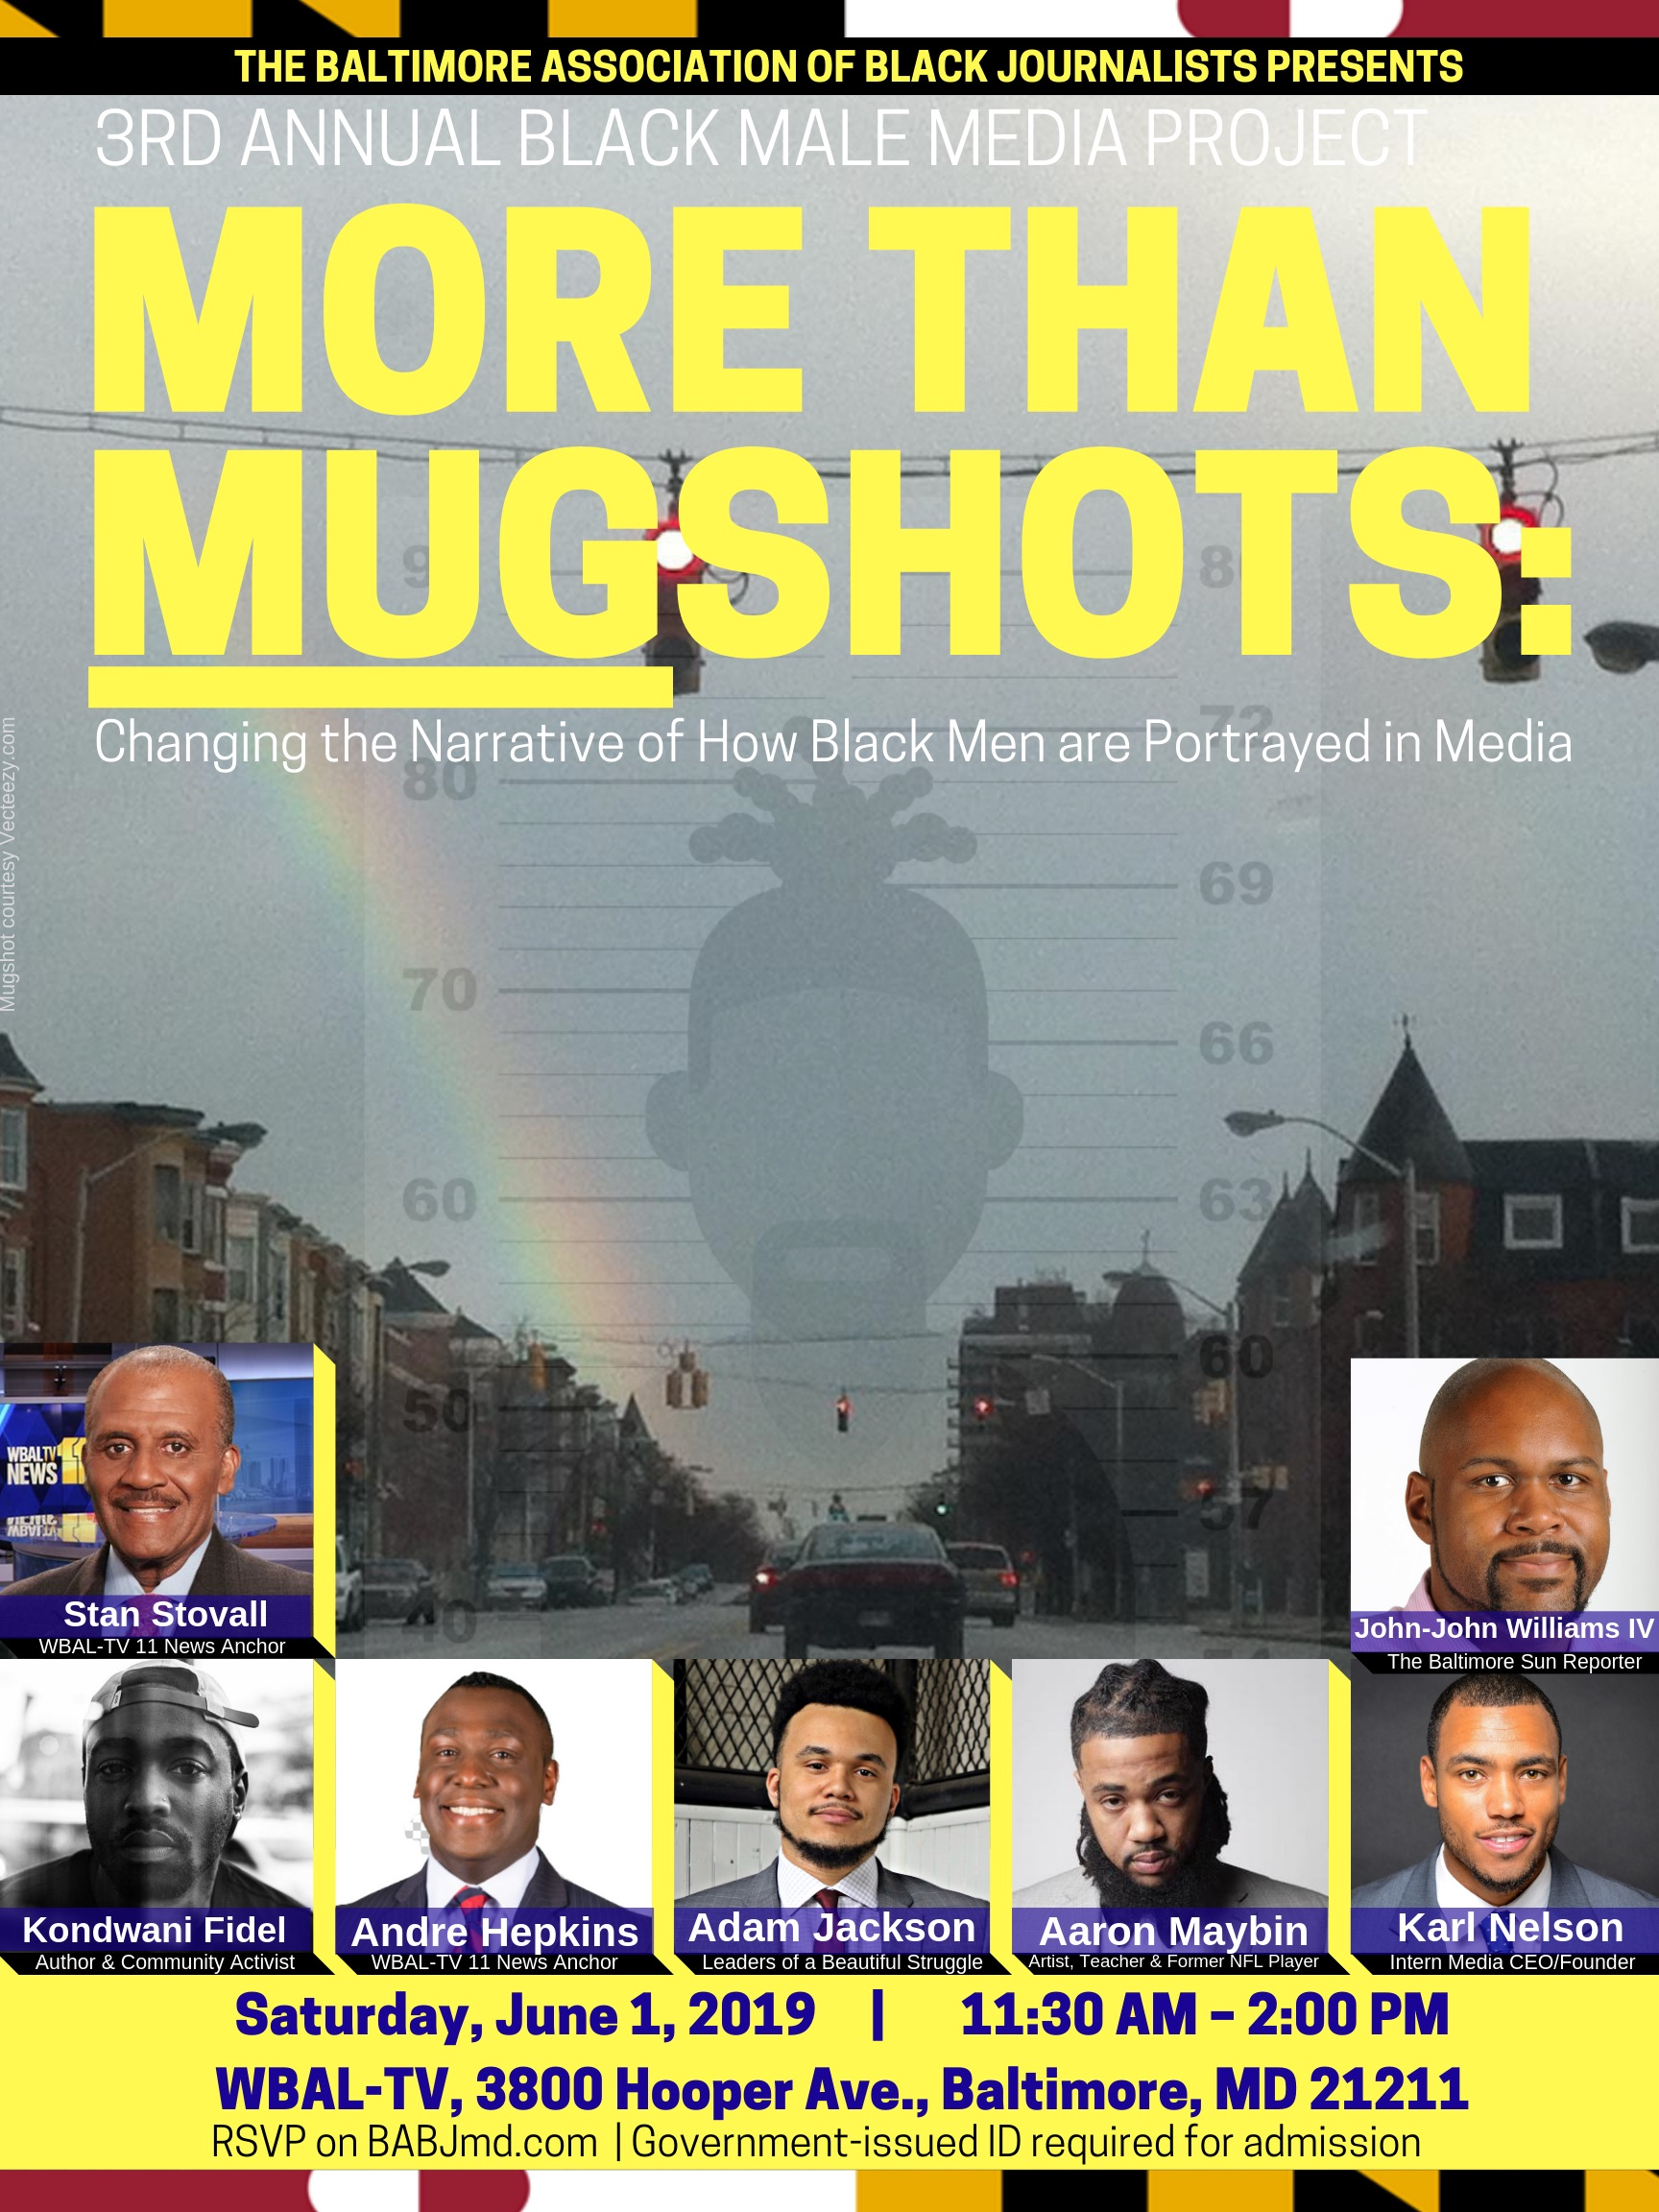 More than Mugshots: Changing the Narrative of How Black Men